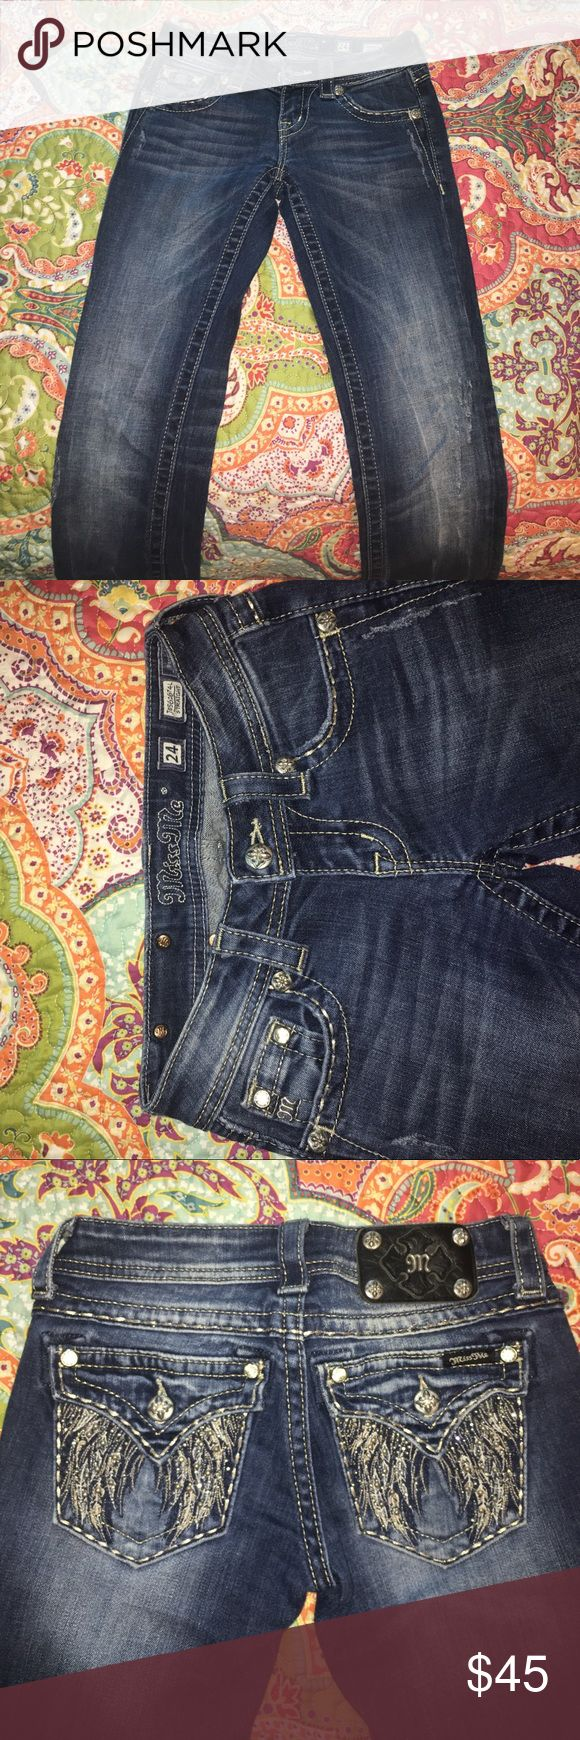 MissMe straight cut jeans MissMe straight cut jeans size 24; flawless condition! Too small for me now 😔 Jeans Straight Leg